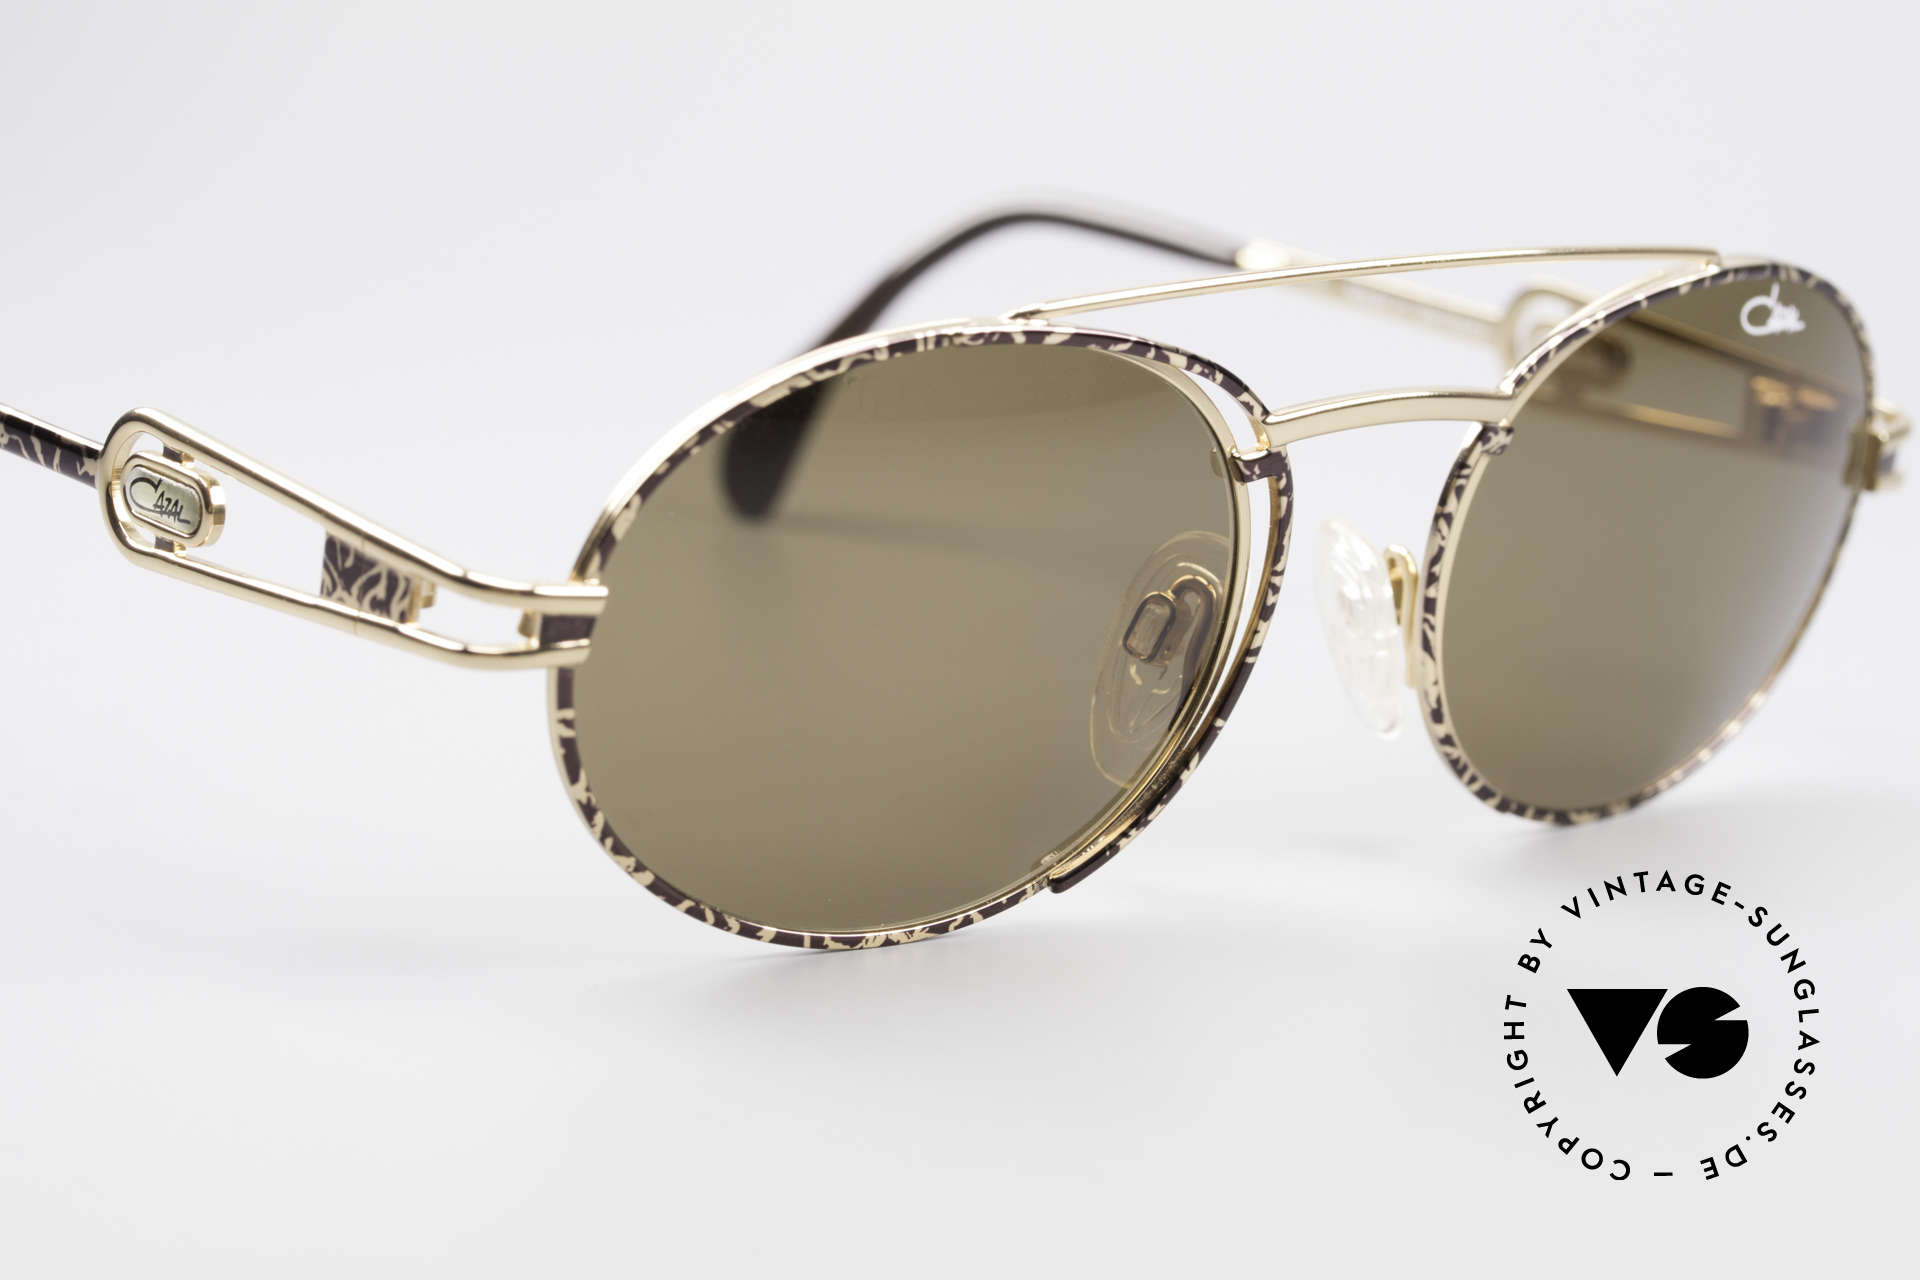 Cazal 965 90s Steampunk Oval Shades, NO RETRO sunglasses, but an authentic old ORIGINAL, Made for Men and Women